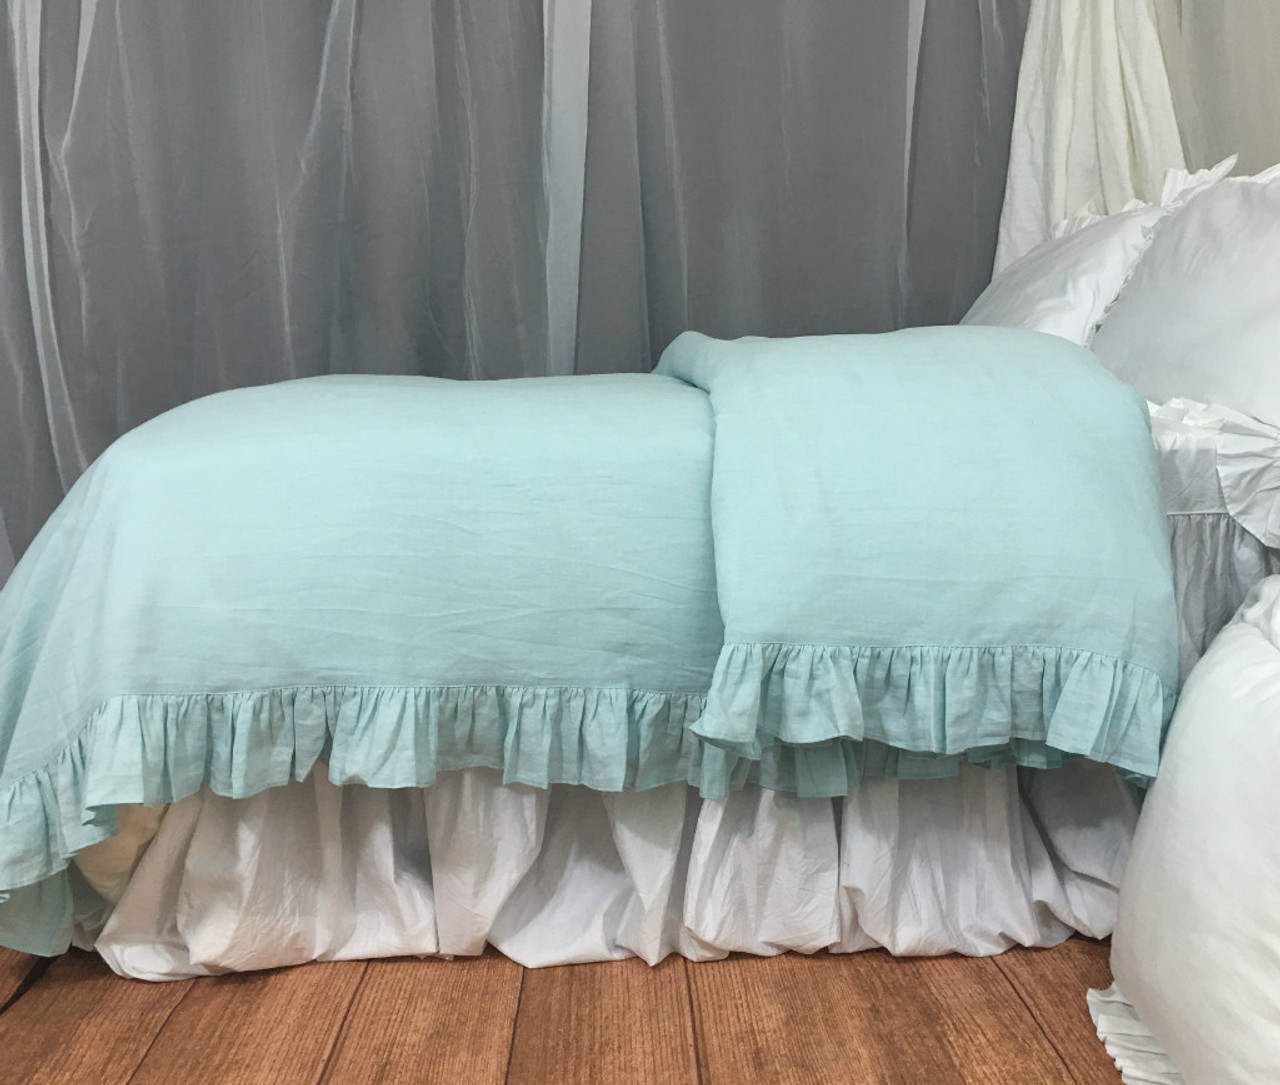 l sham linens liliput ruffle ruffled pillows shams and cover ashwell bedding euro duvet rachel with